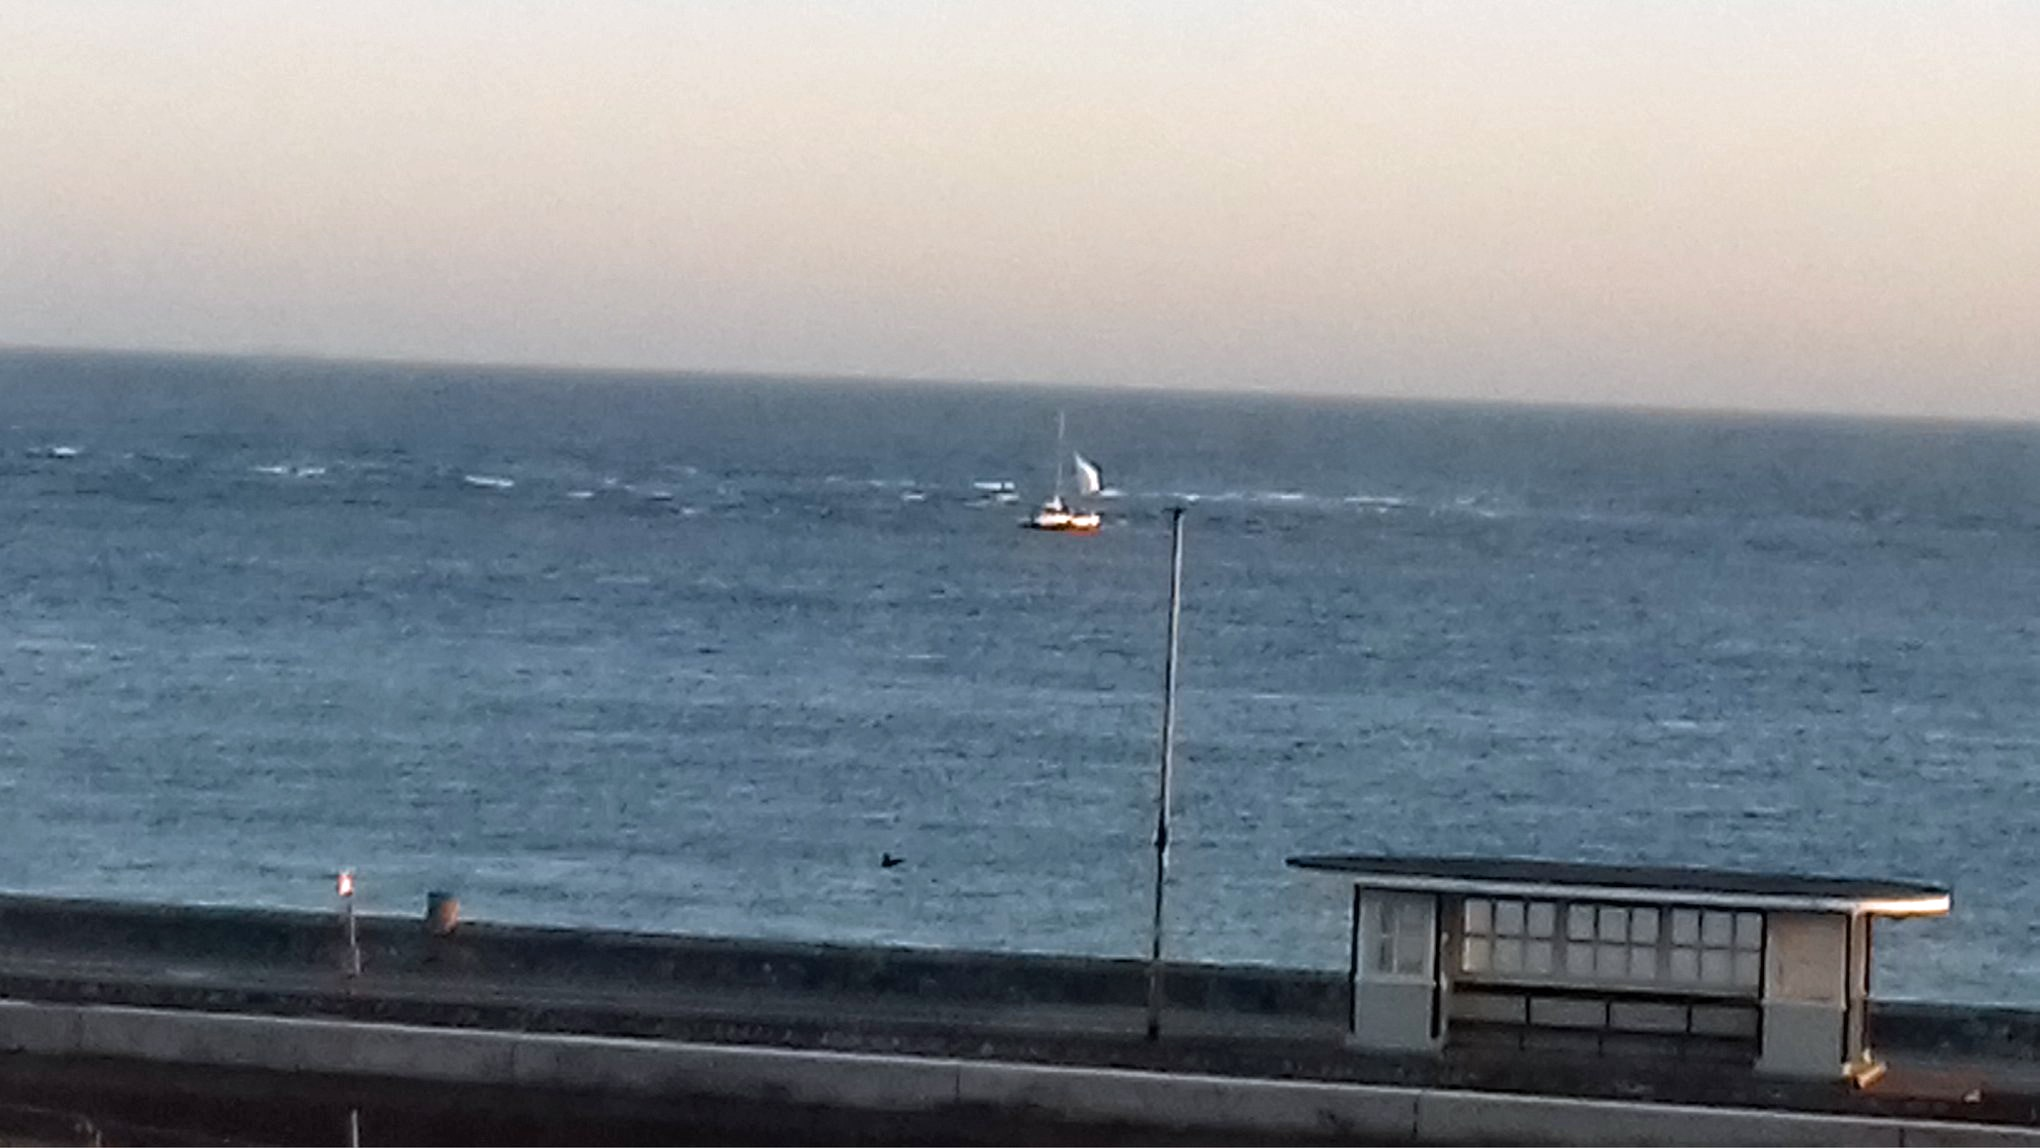 The Catamaran rn aground on Pole Sands, Exmouth. Picture: Lynne Tregenna Wood